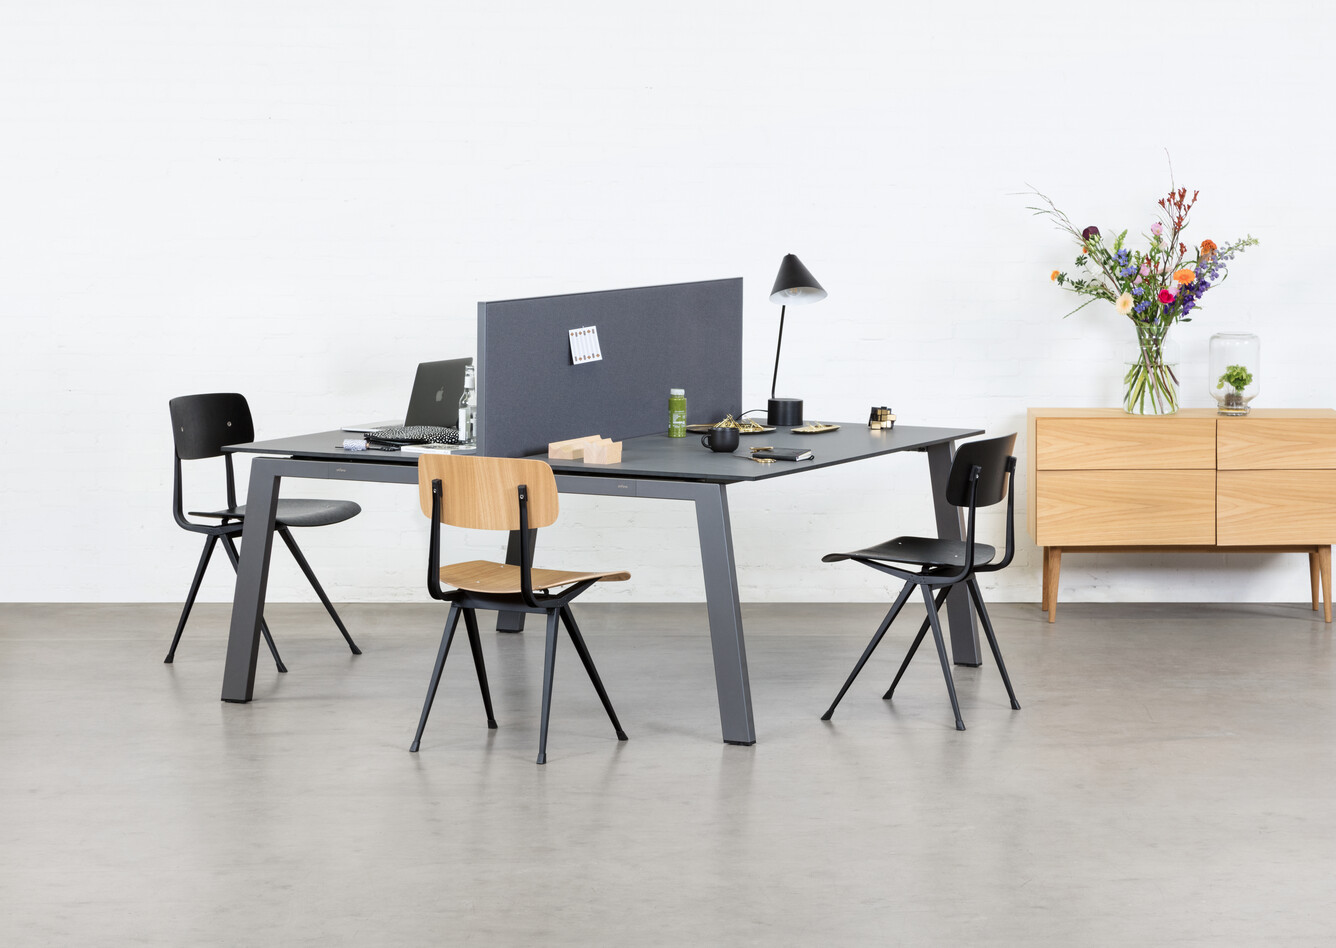 Royal Ahrend Balance 4 leg dual workstation in anthracite with charcoal tops and grey screen with Result chairs front left view